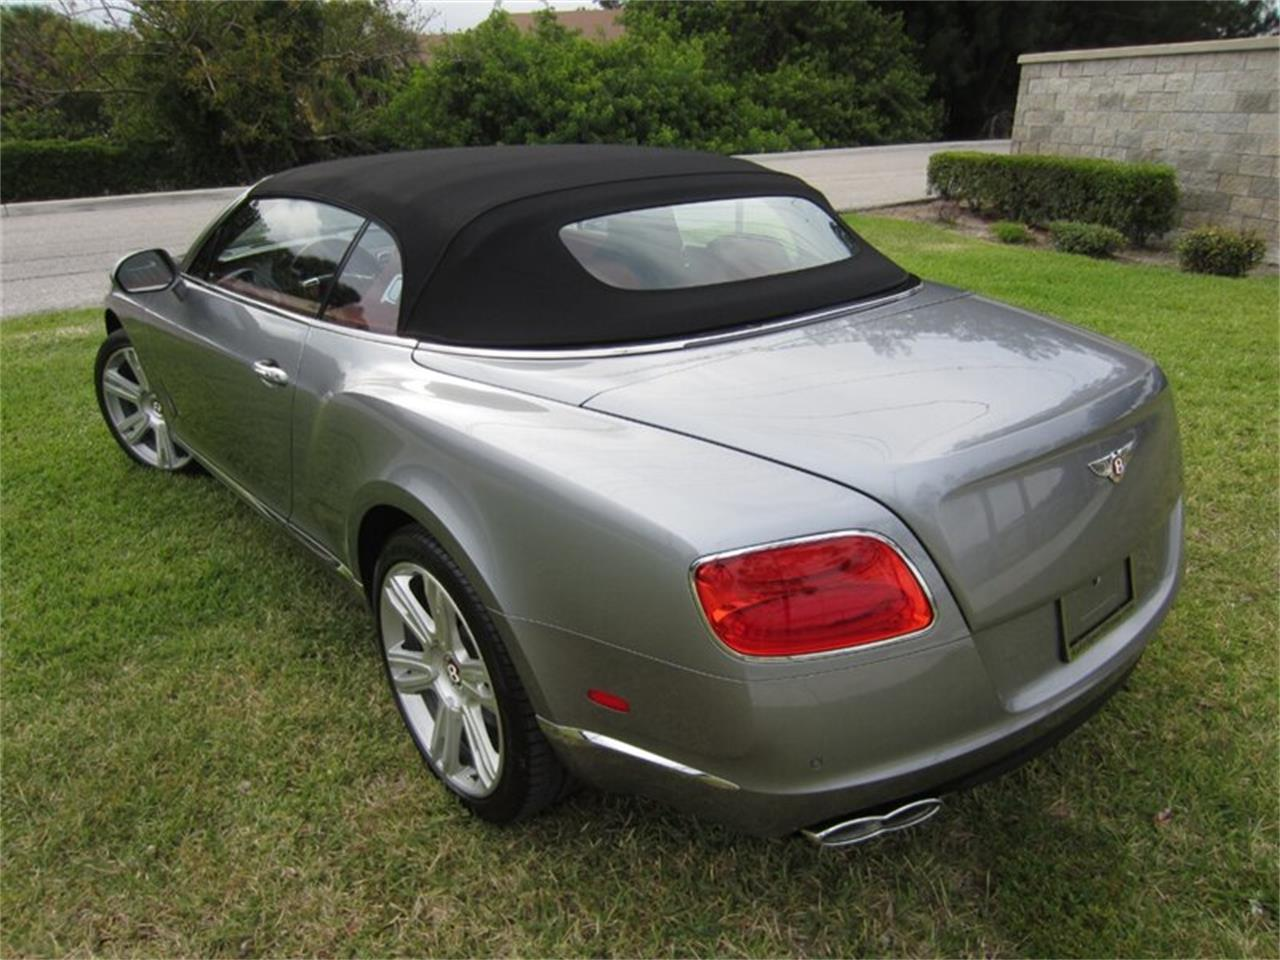 2013 Bentley Continental GTC V8 for sale in Delray Beach, FL – photo 22